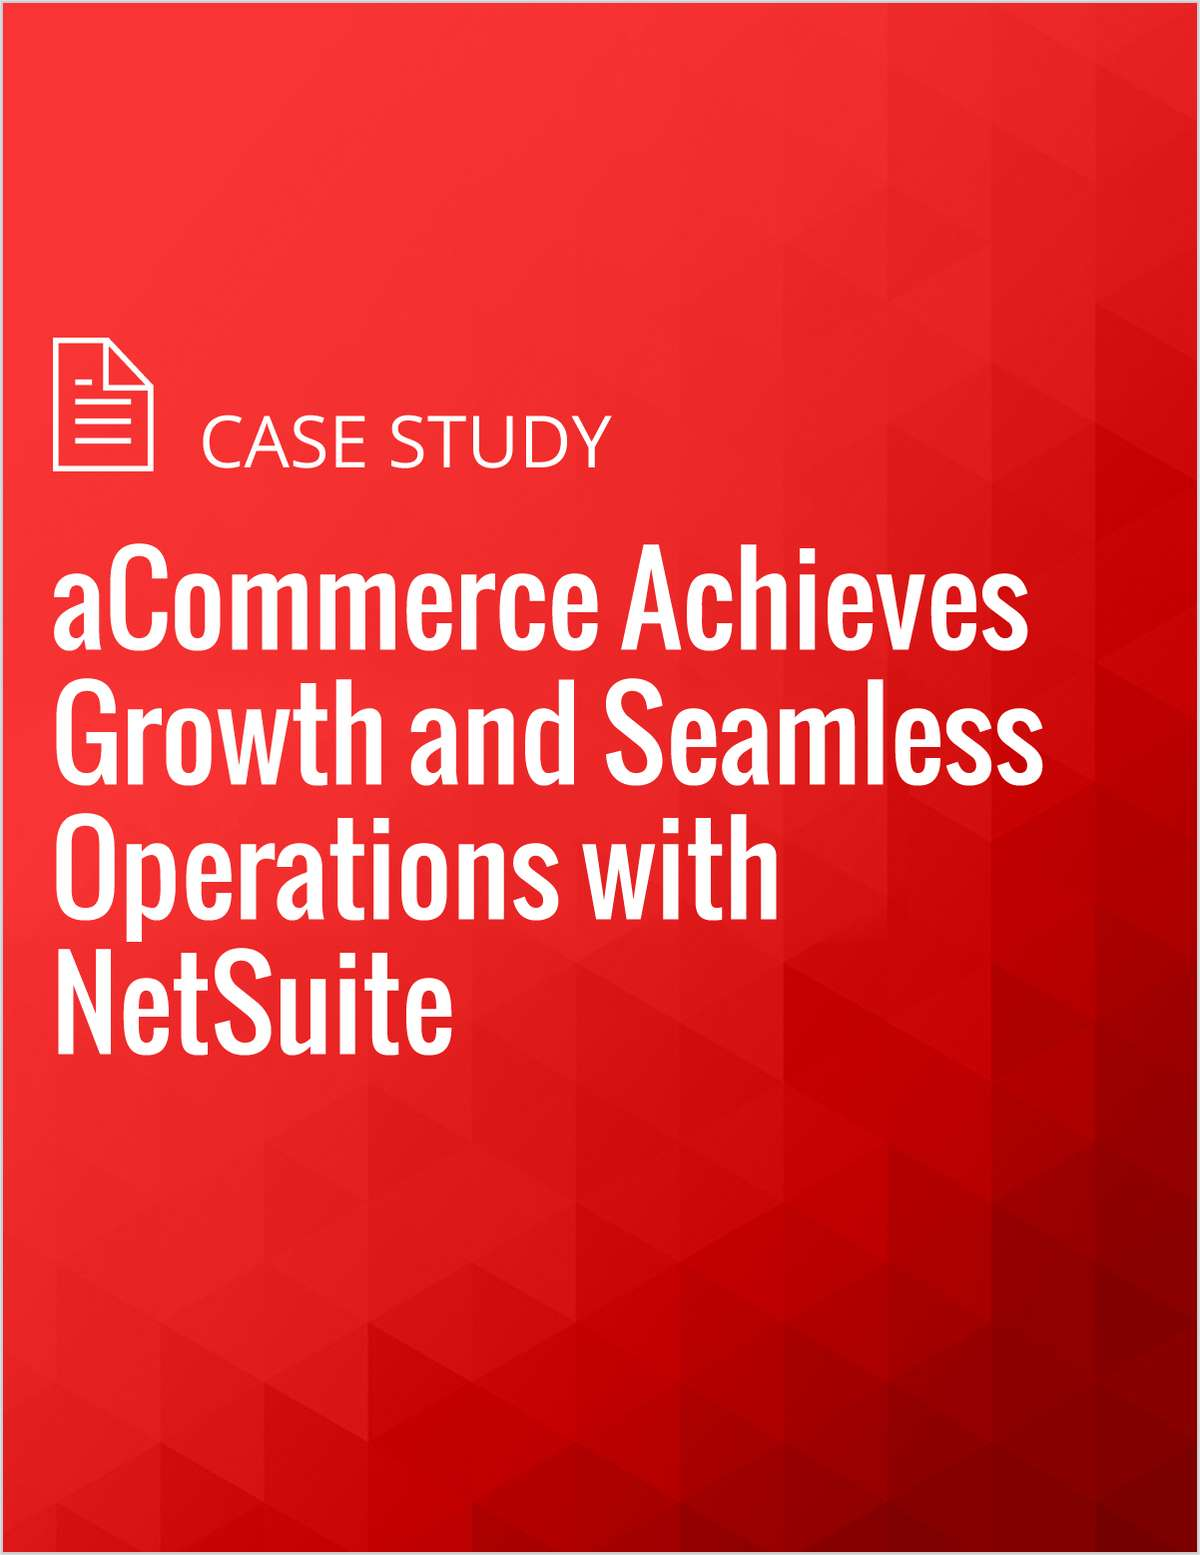 aCommerce Achieves Growth and Seamless Operations with NetSuite